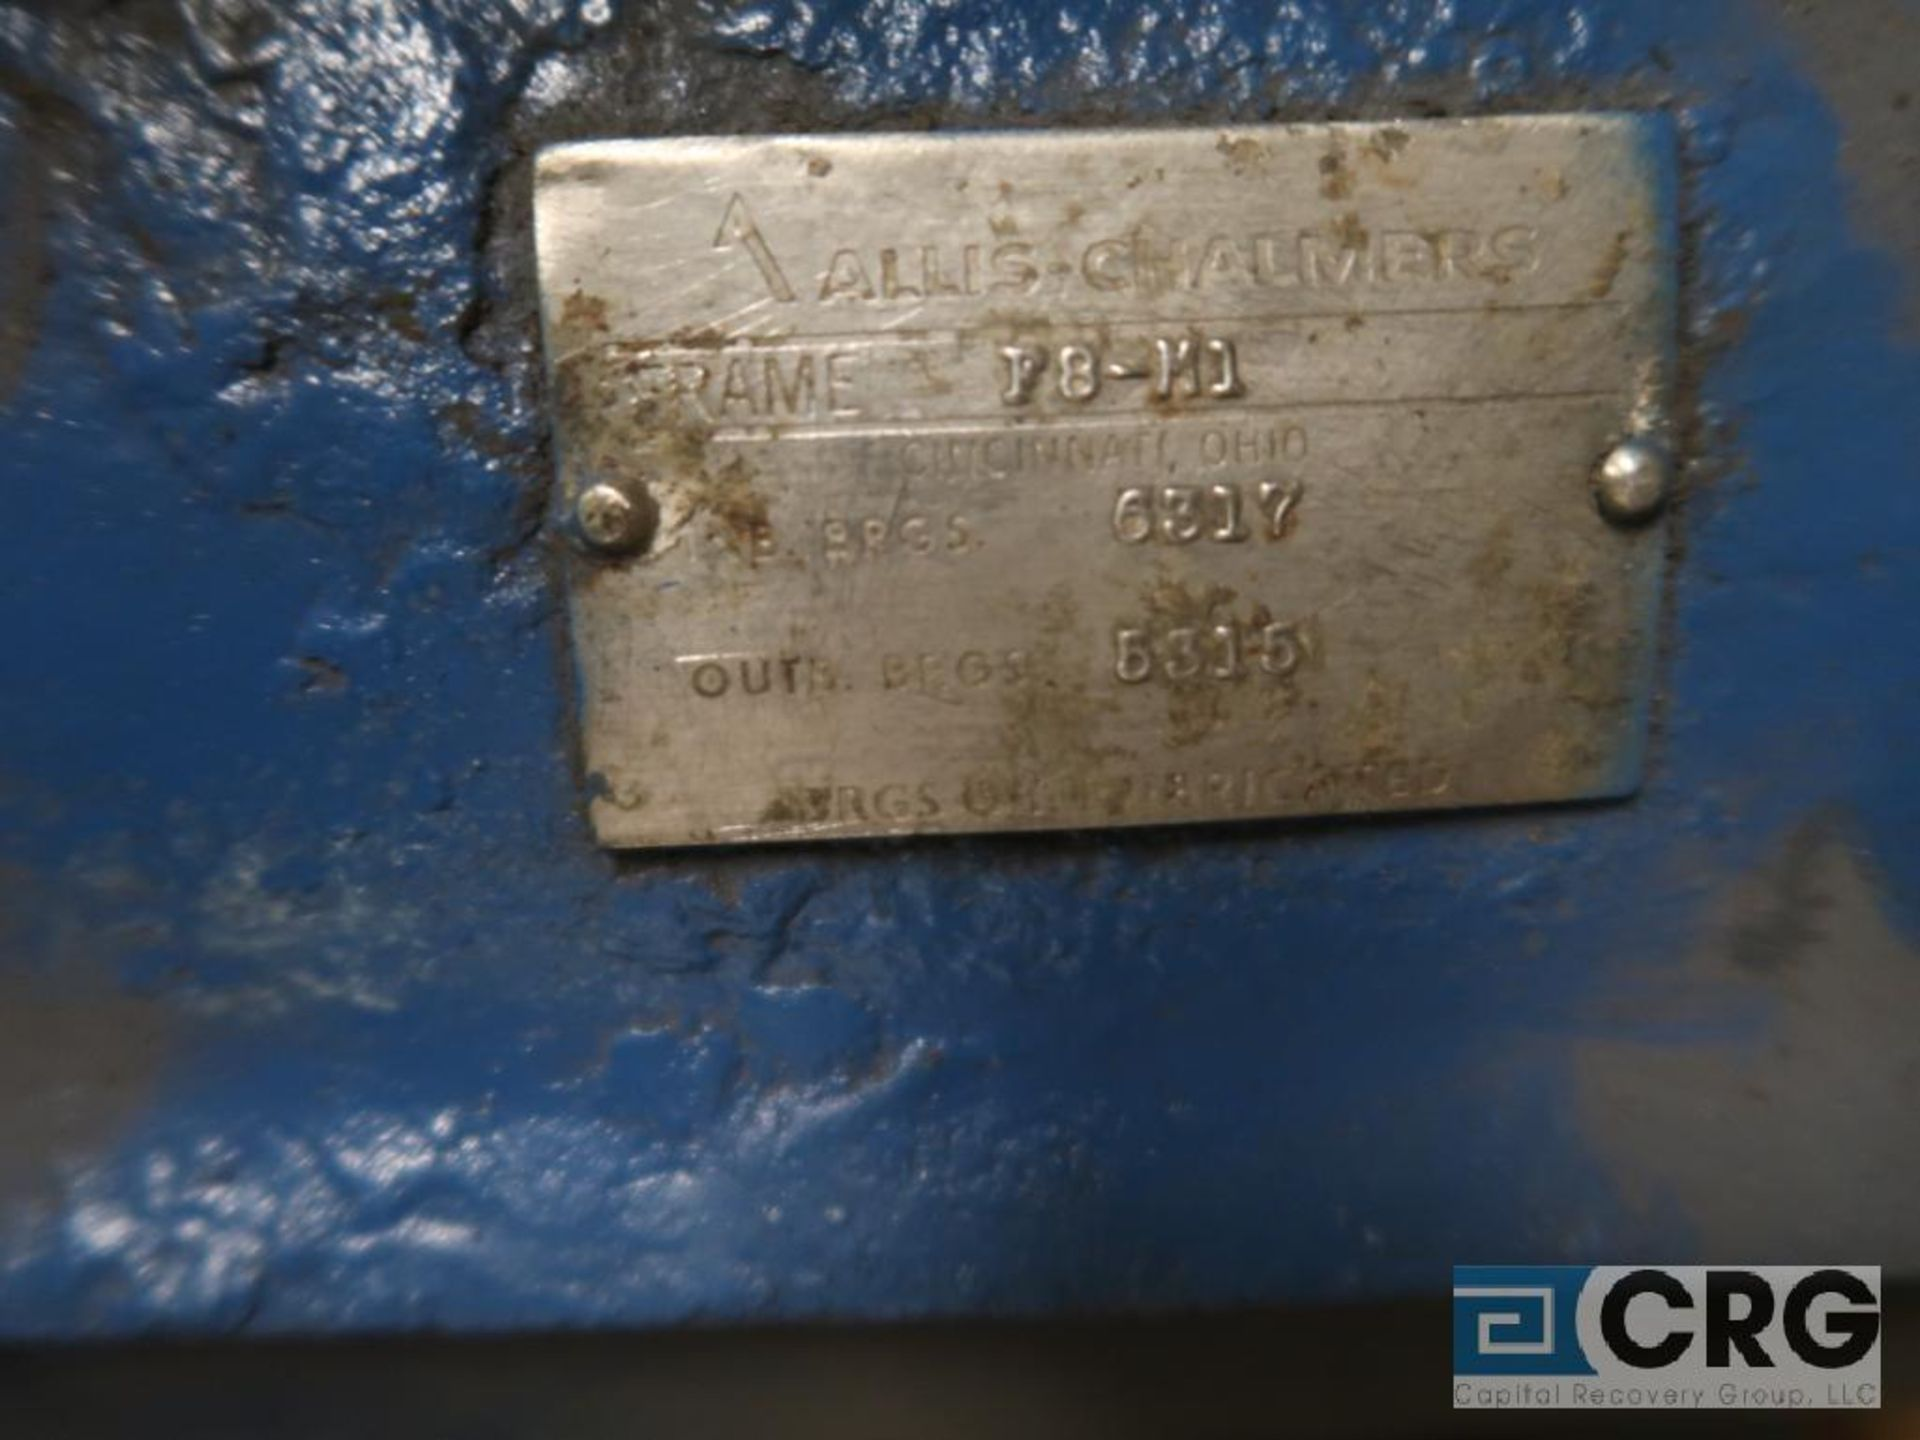 Allis Chalmers 78 MI 16 in. pump (Basement Stores) - Image 3 of 3